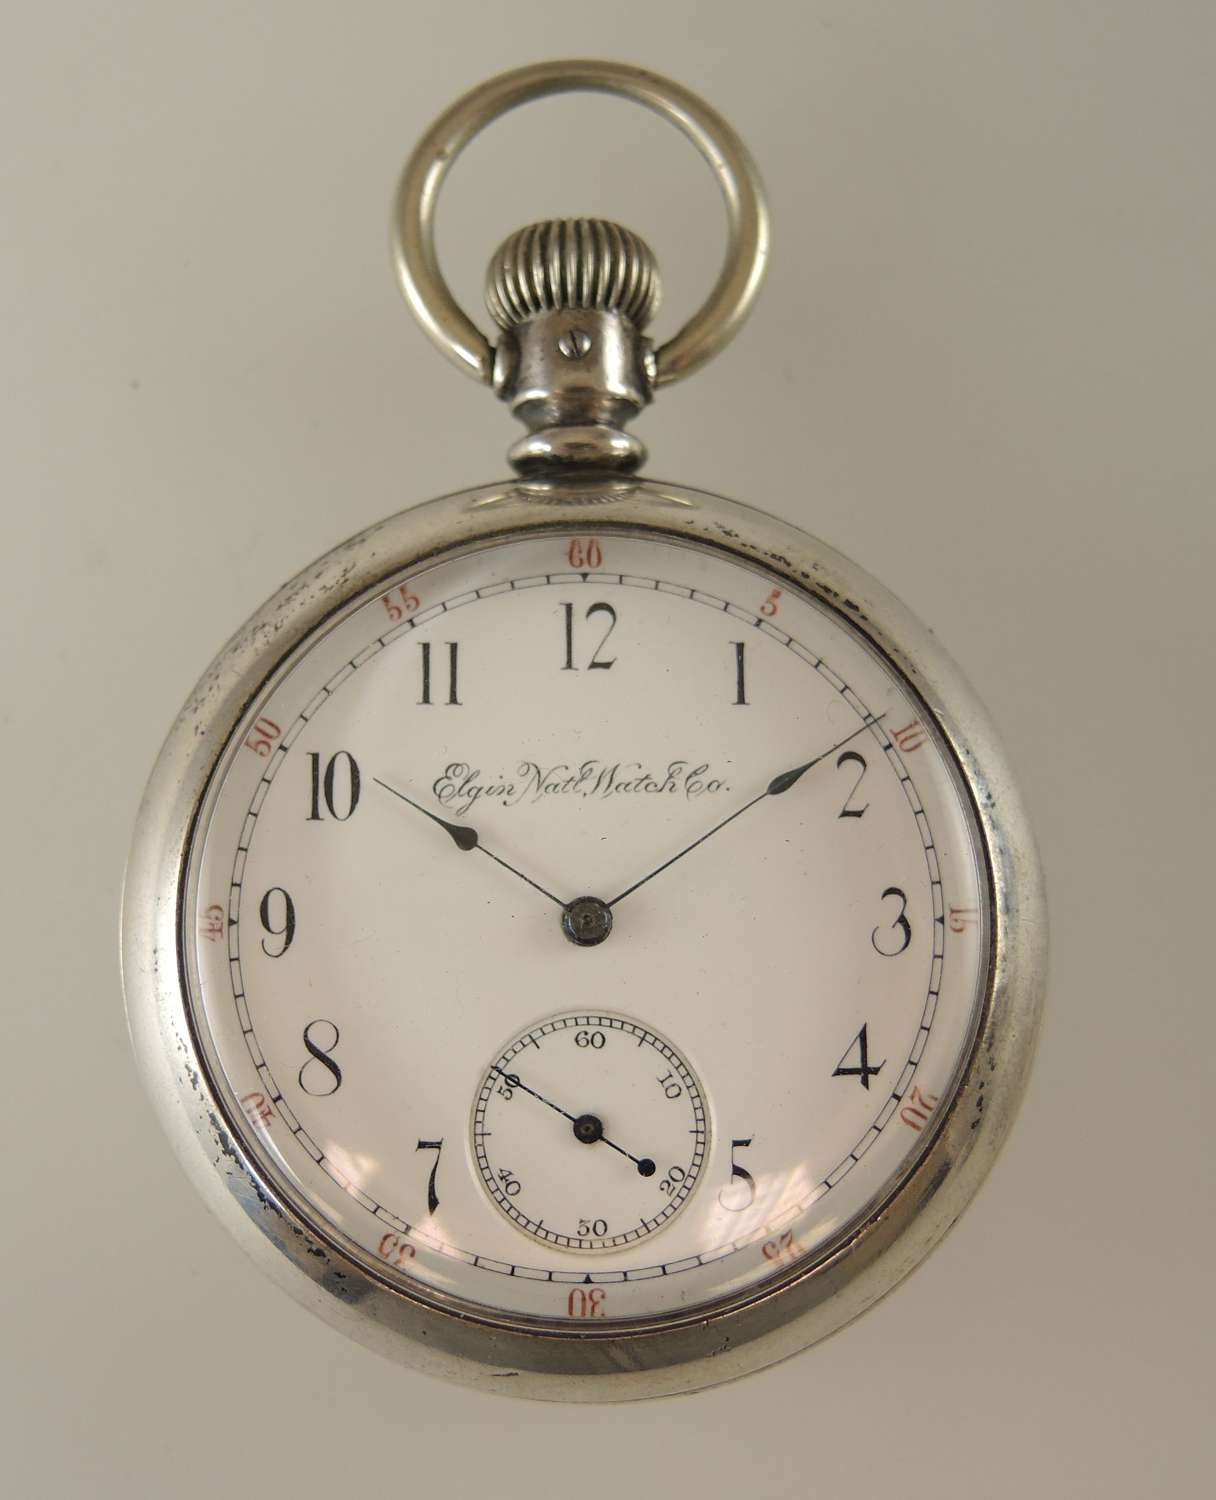 Rare Elgin pocket watch with a convertible movement. c1891